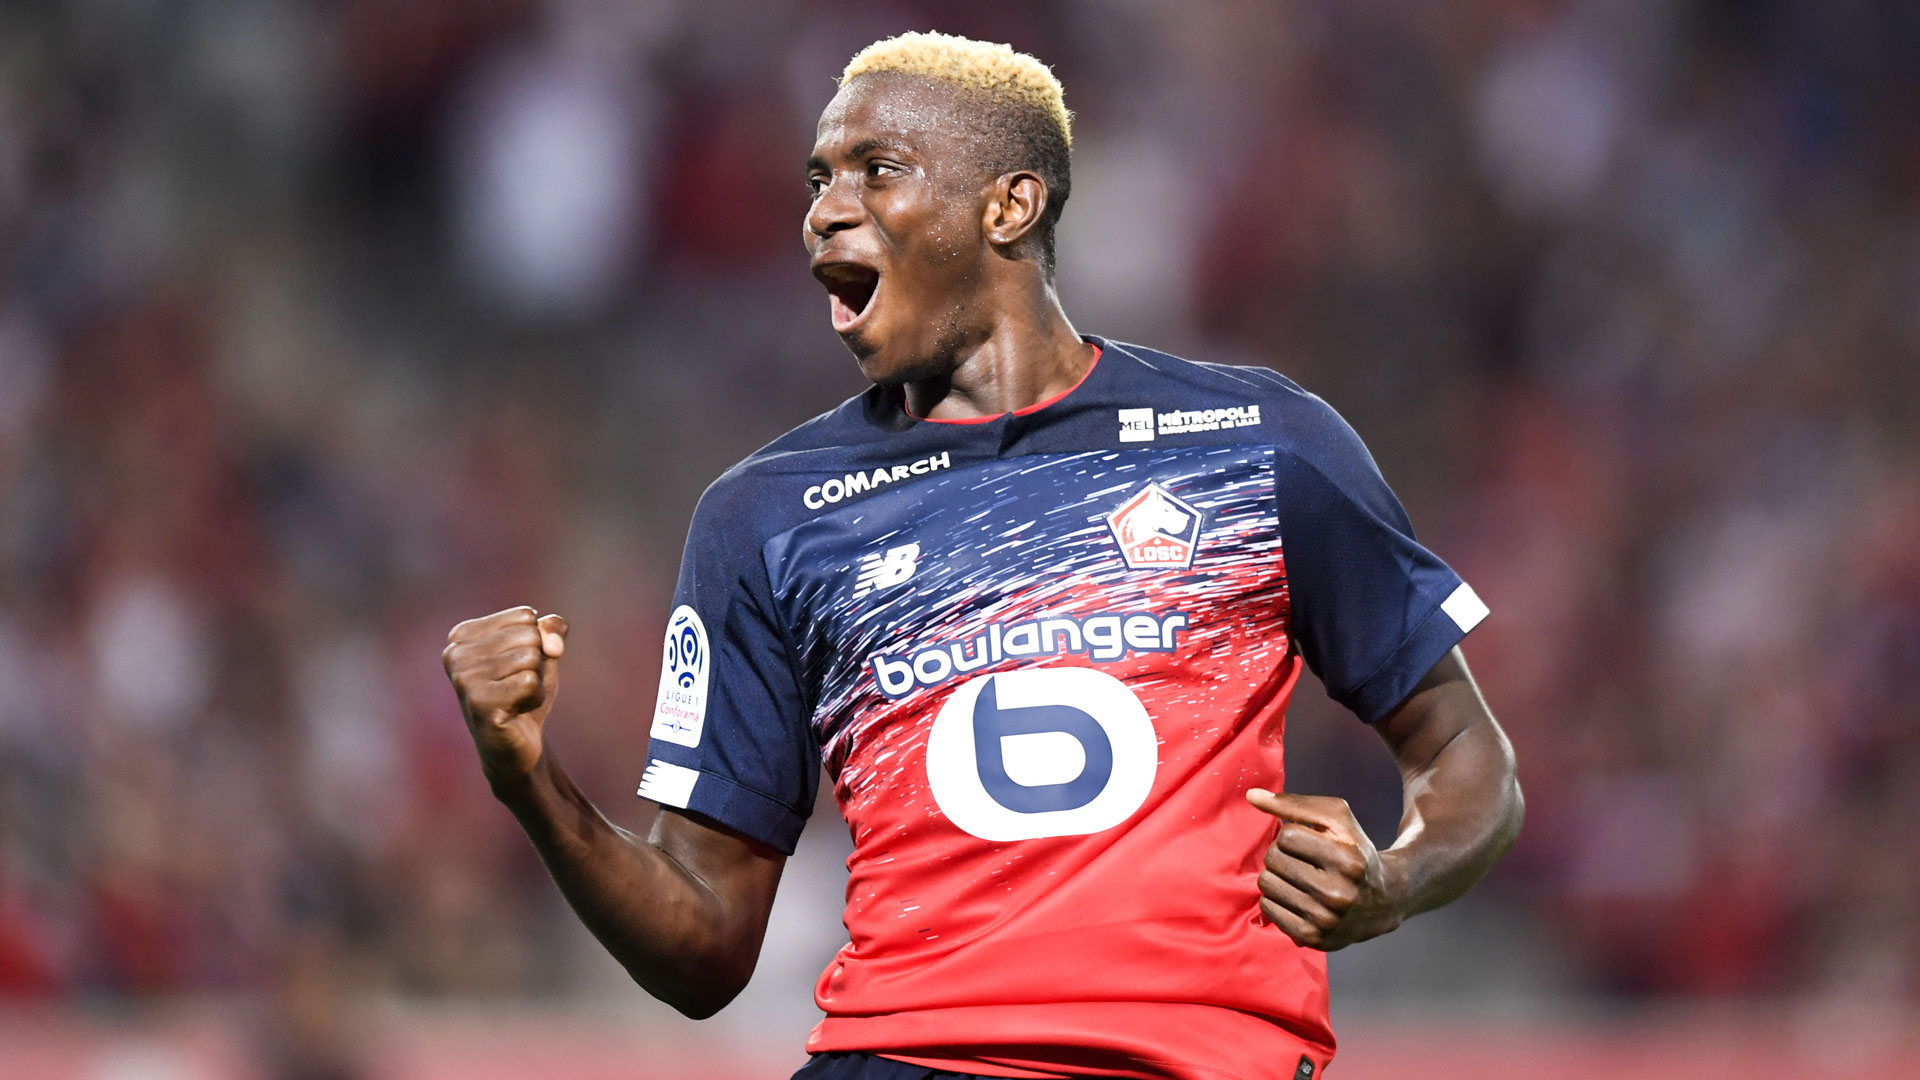 Osimhen Youngest Player to Net 10 Goals in Top 5 Euro Leagues in 2019/20 Season